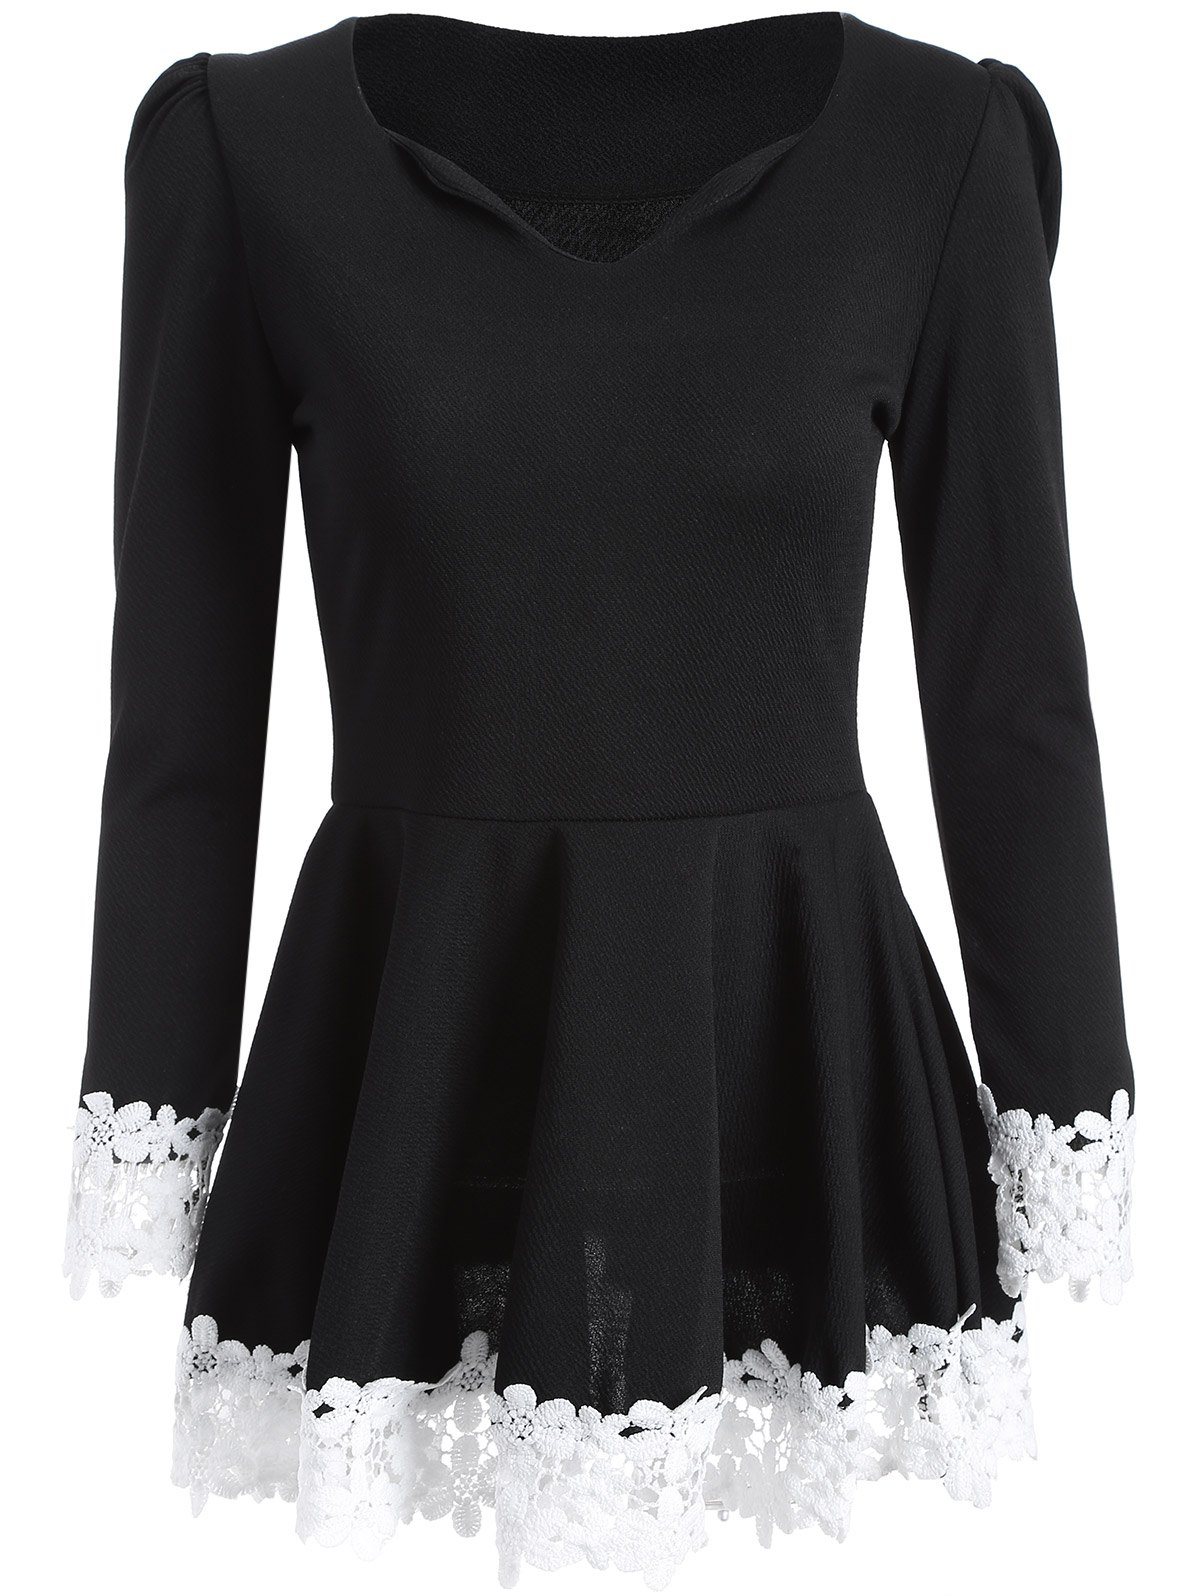 Lace Insert Skirted Top - BLACK ONE SIZE